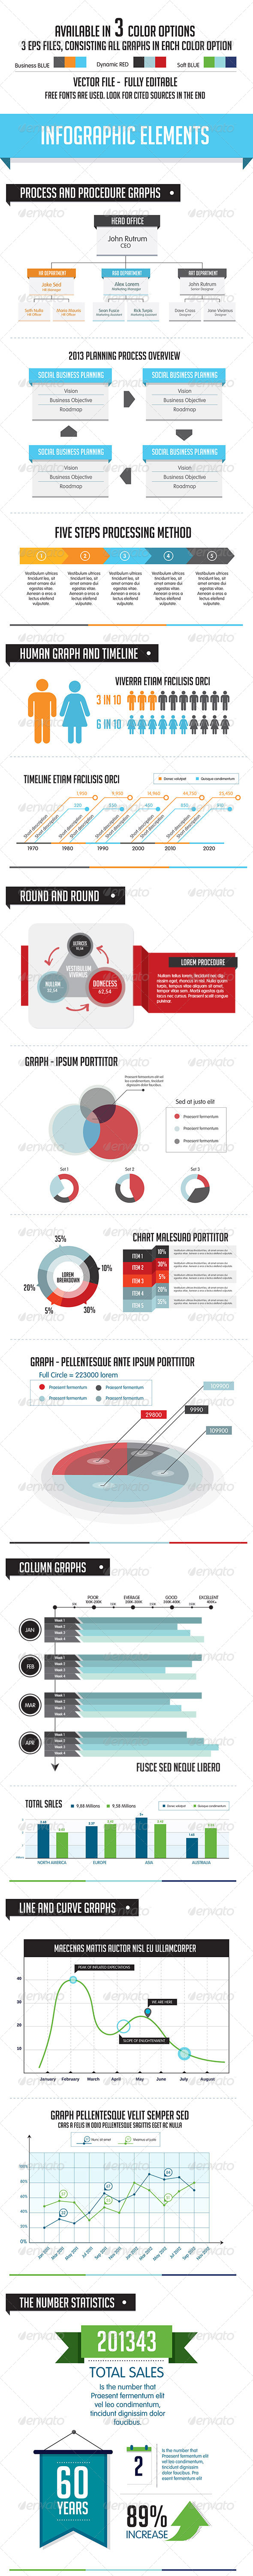 GraphicRiver Business Infographic Elements 3 Color Choices 5570199